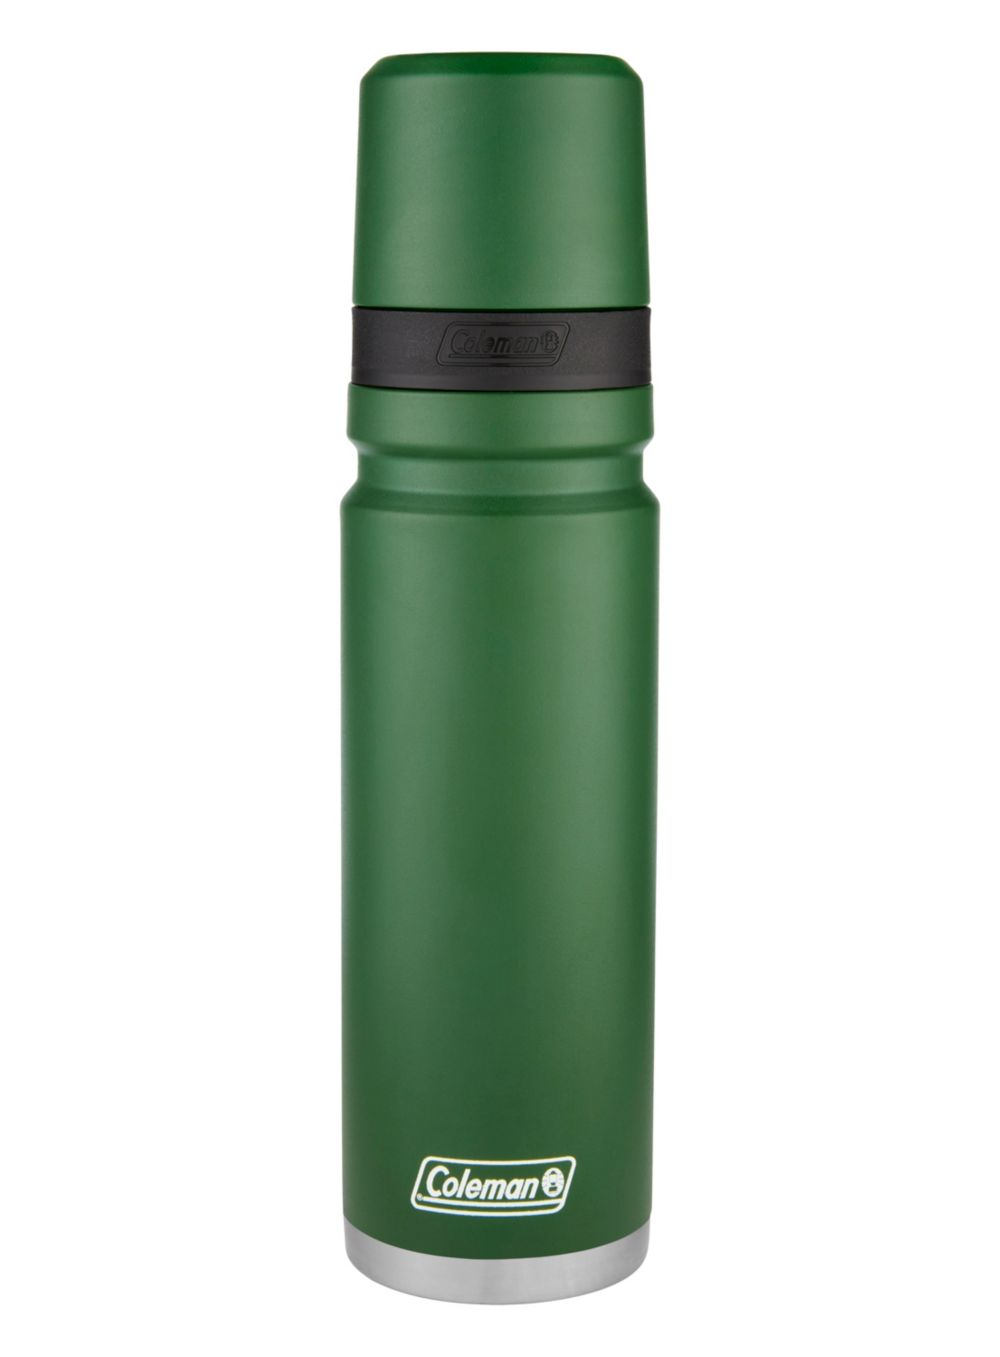 3Sixty Pour Vacuum Insulated Stainless Steel Thermal Bottle